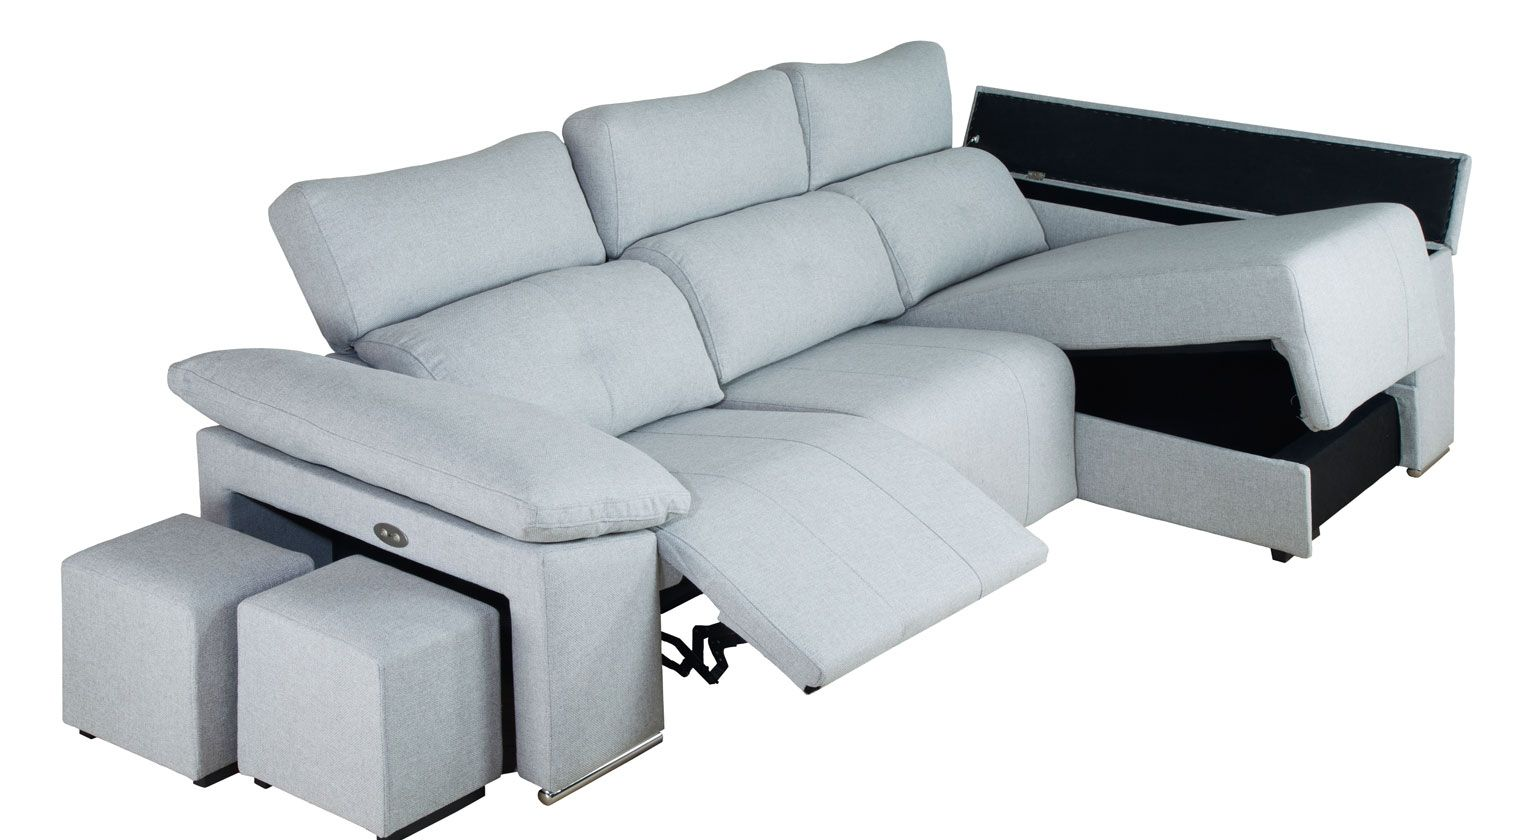 tumb-Chaise-Longue-Relax-CALIPSO-2